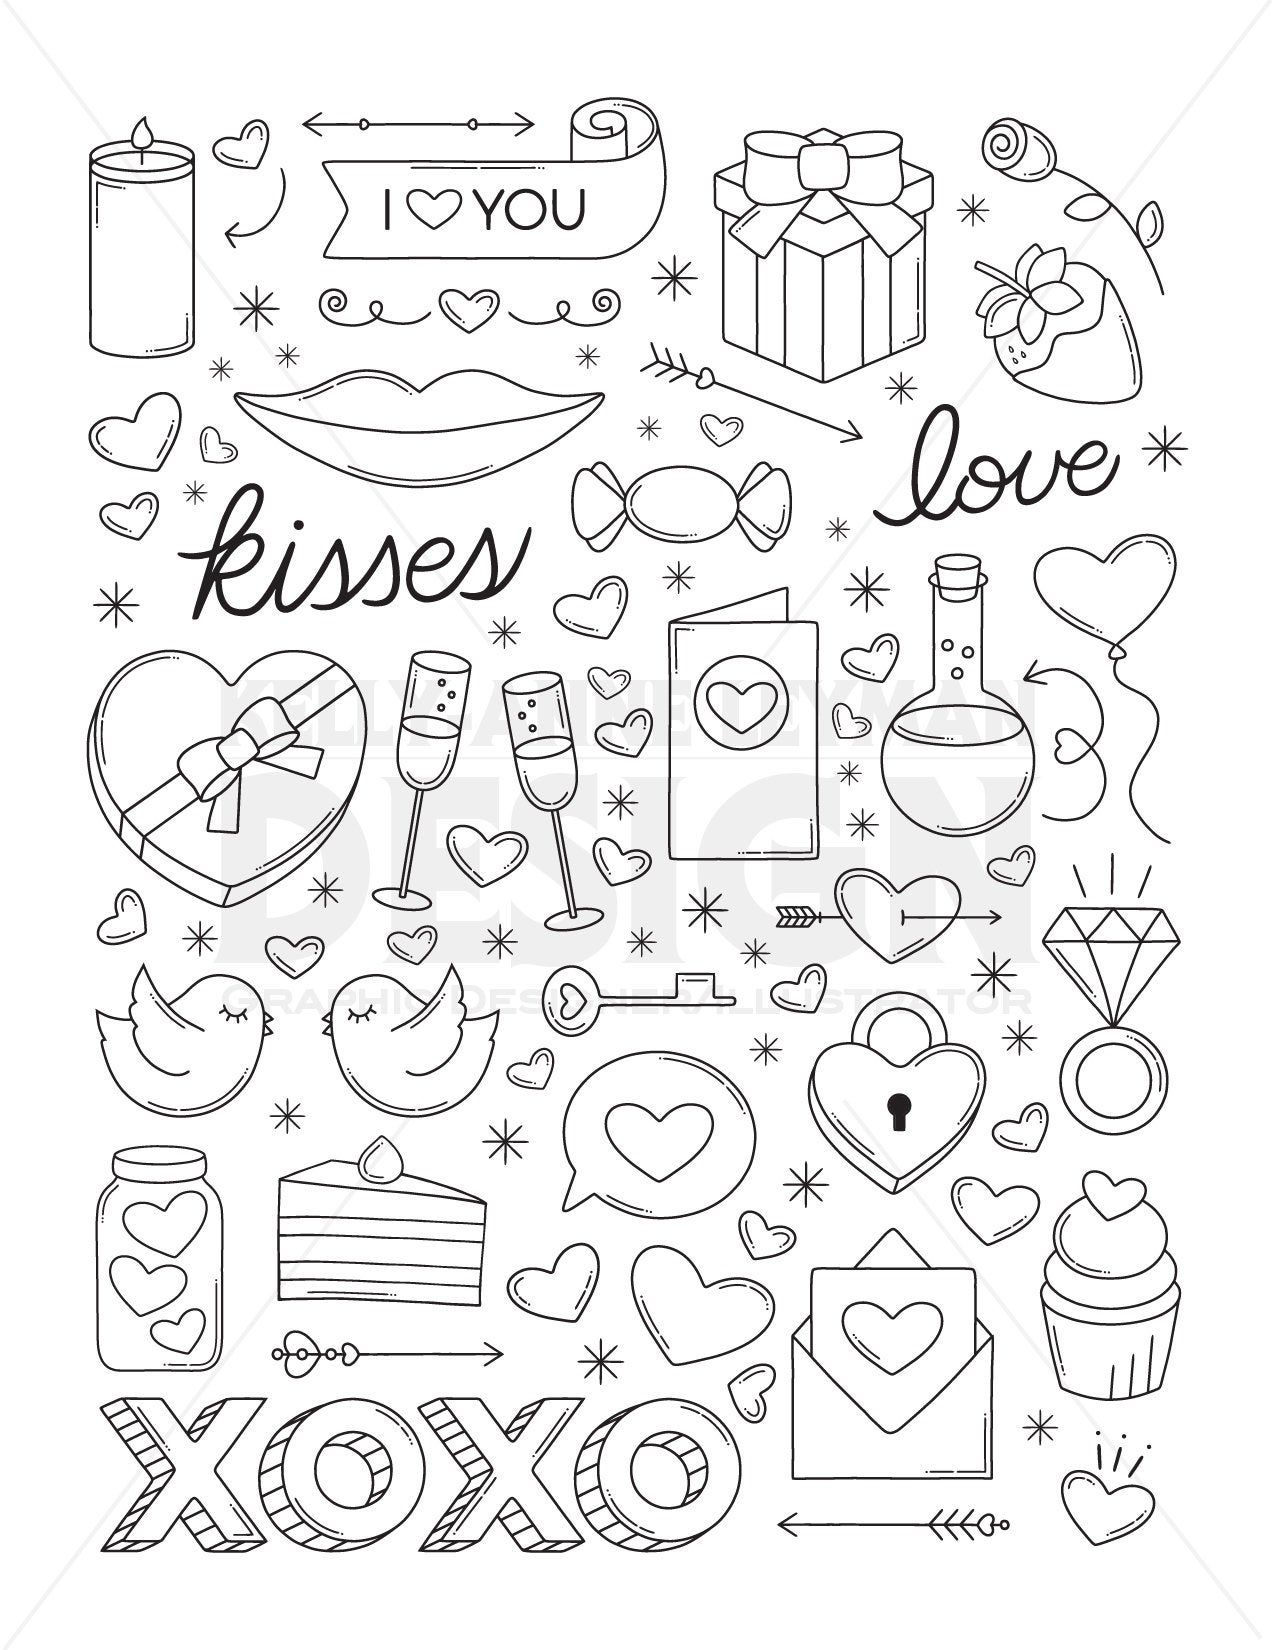 Love Printable Coloring Pages For Adults Retro Coloring Page Etsy In 2021 Printable Coloring Pages Coloring Pages Printable Coloring